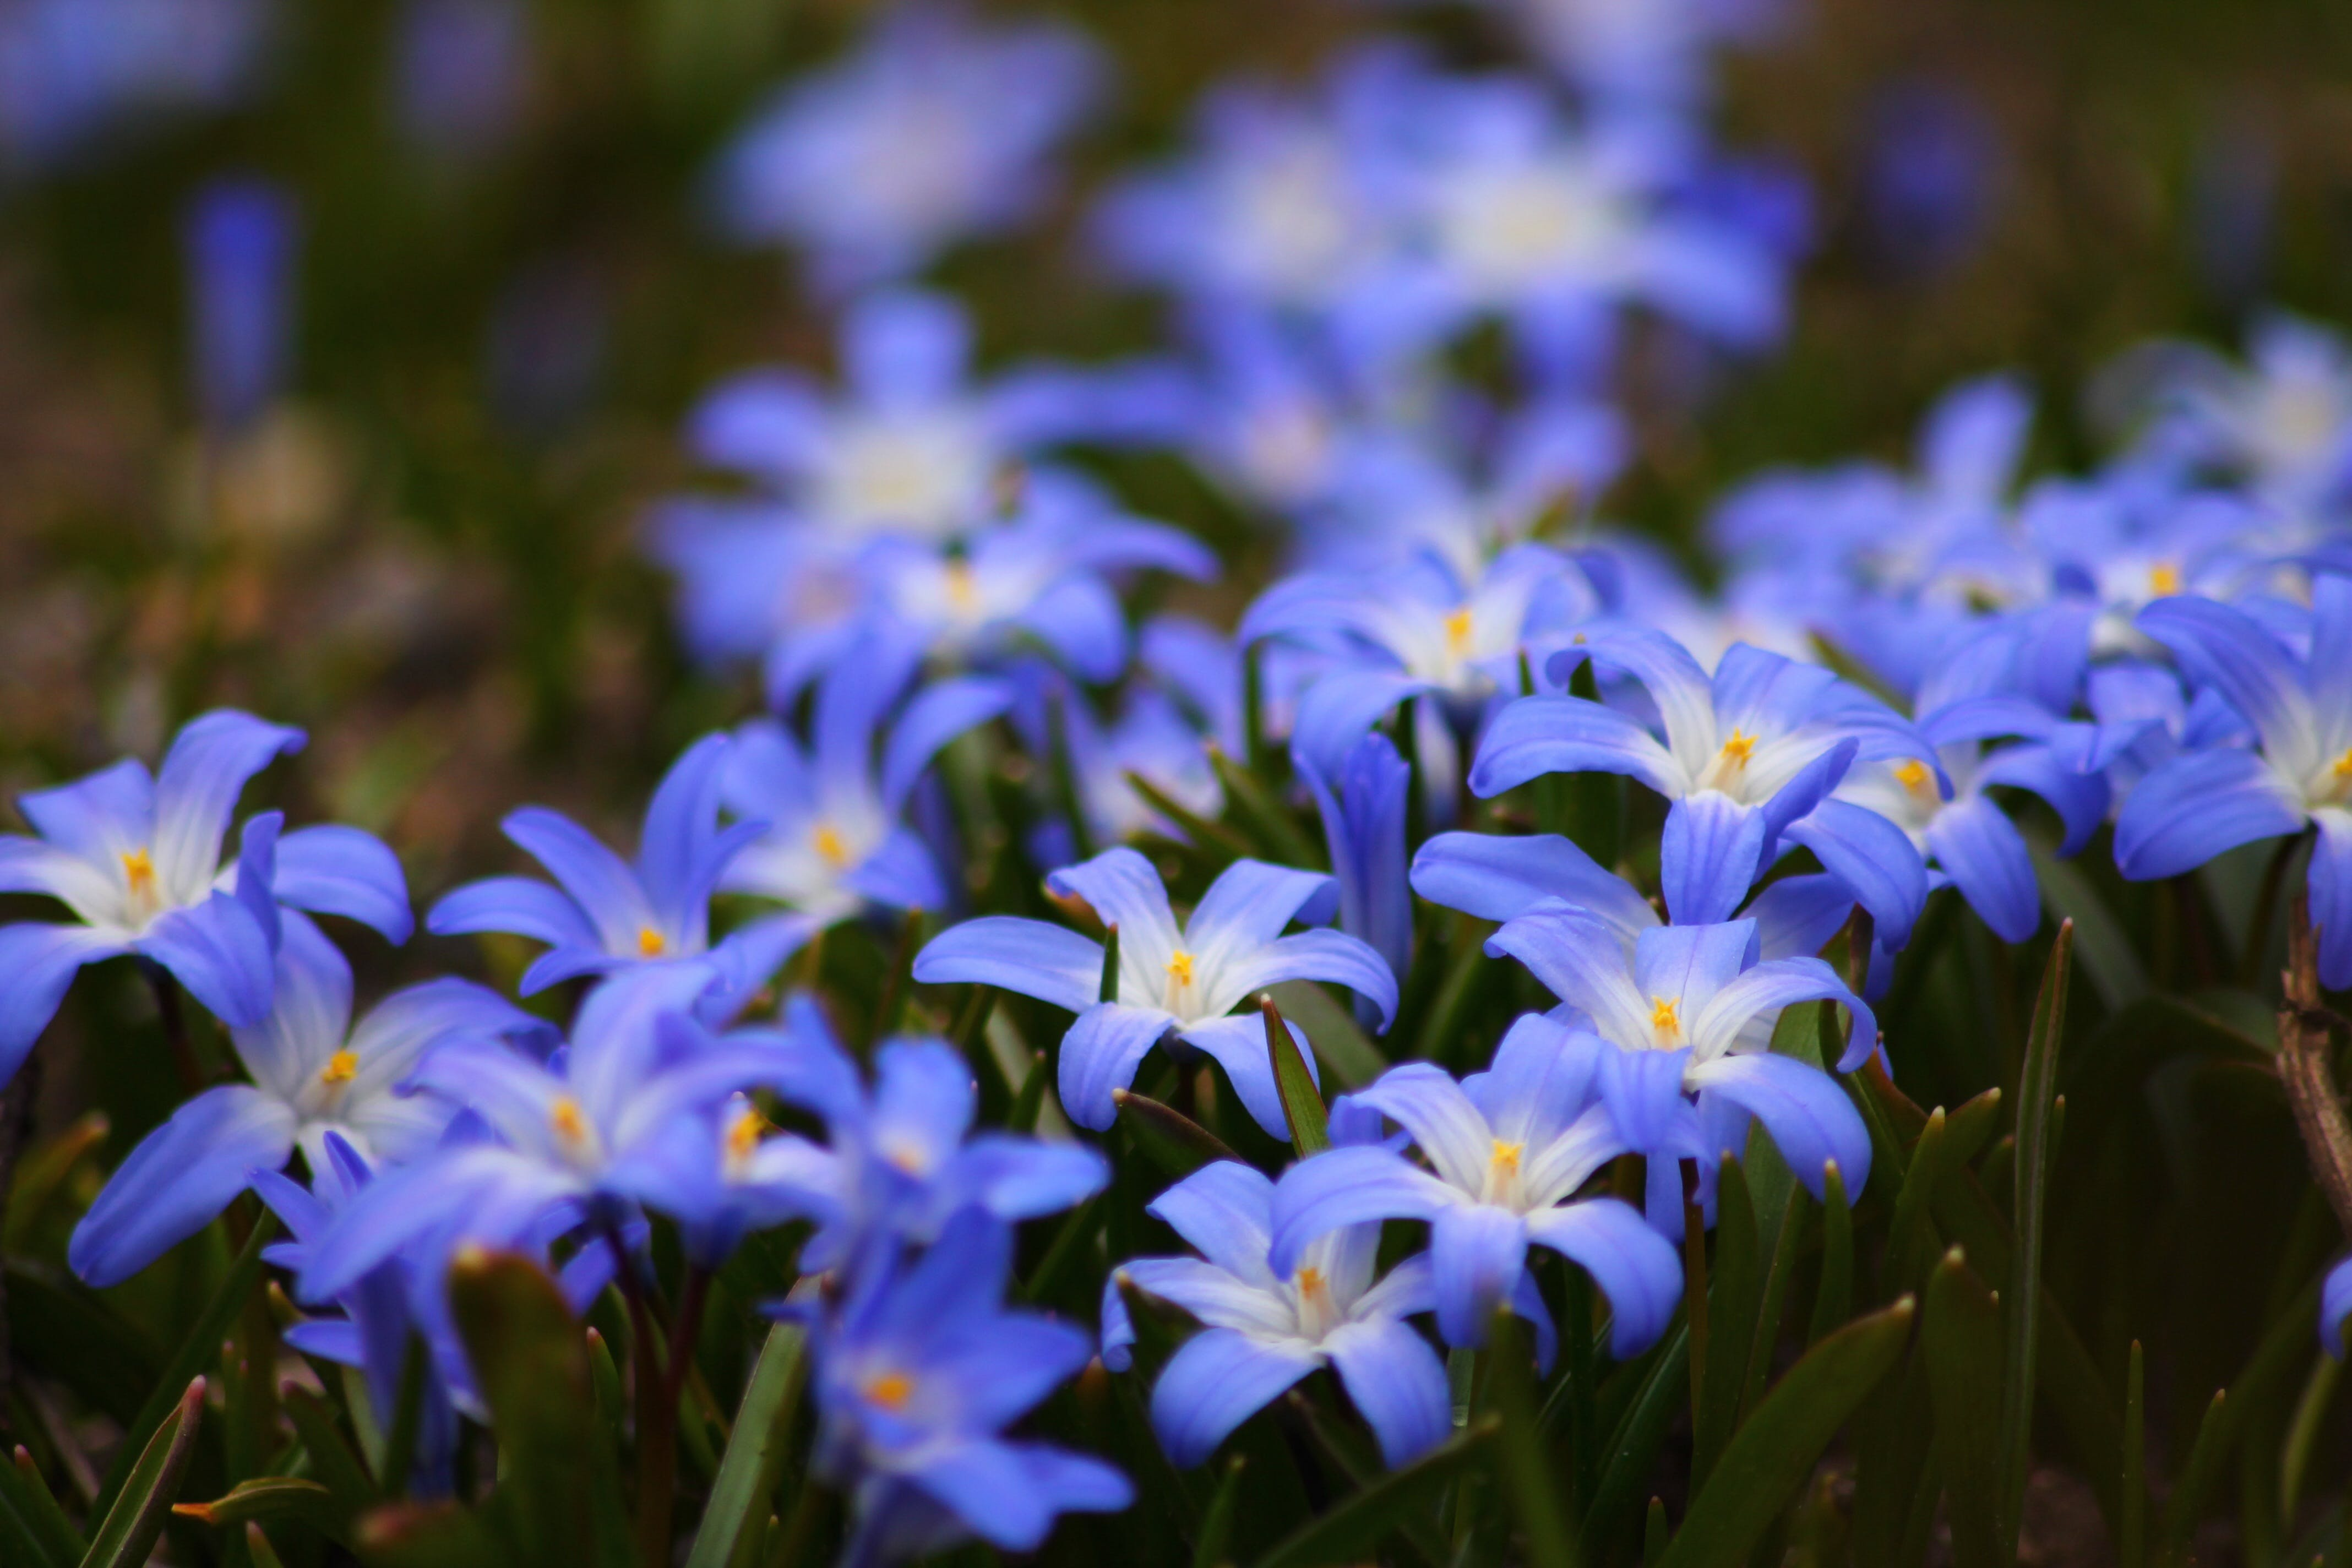 Free stock photo of nature, flowers, plant, bloom